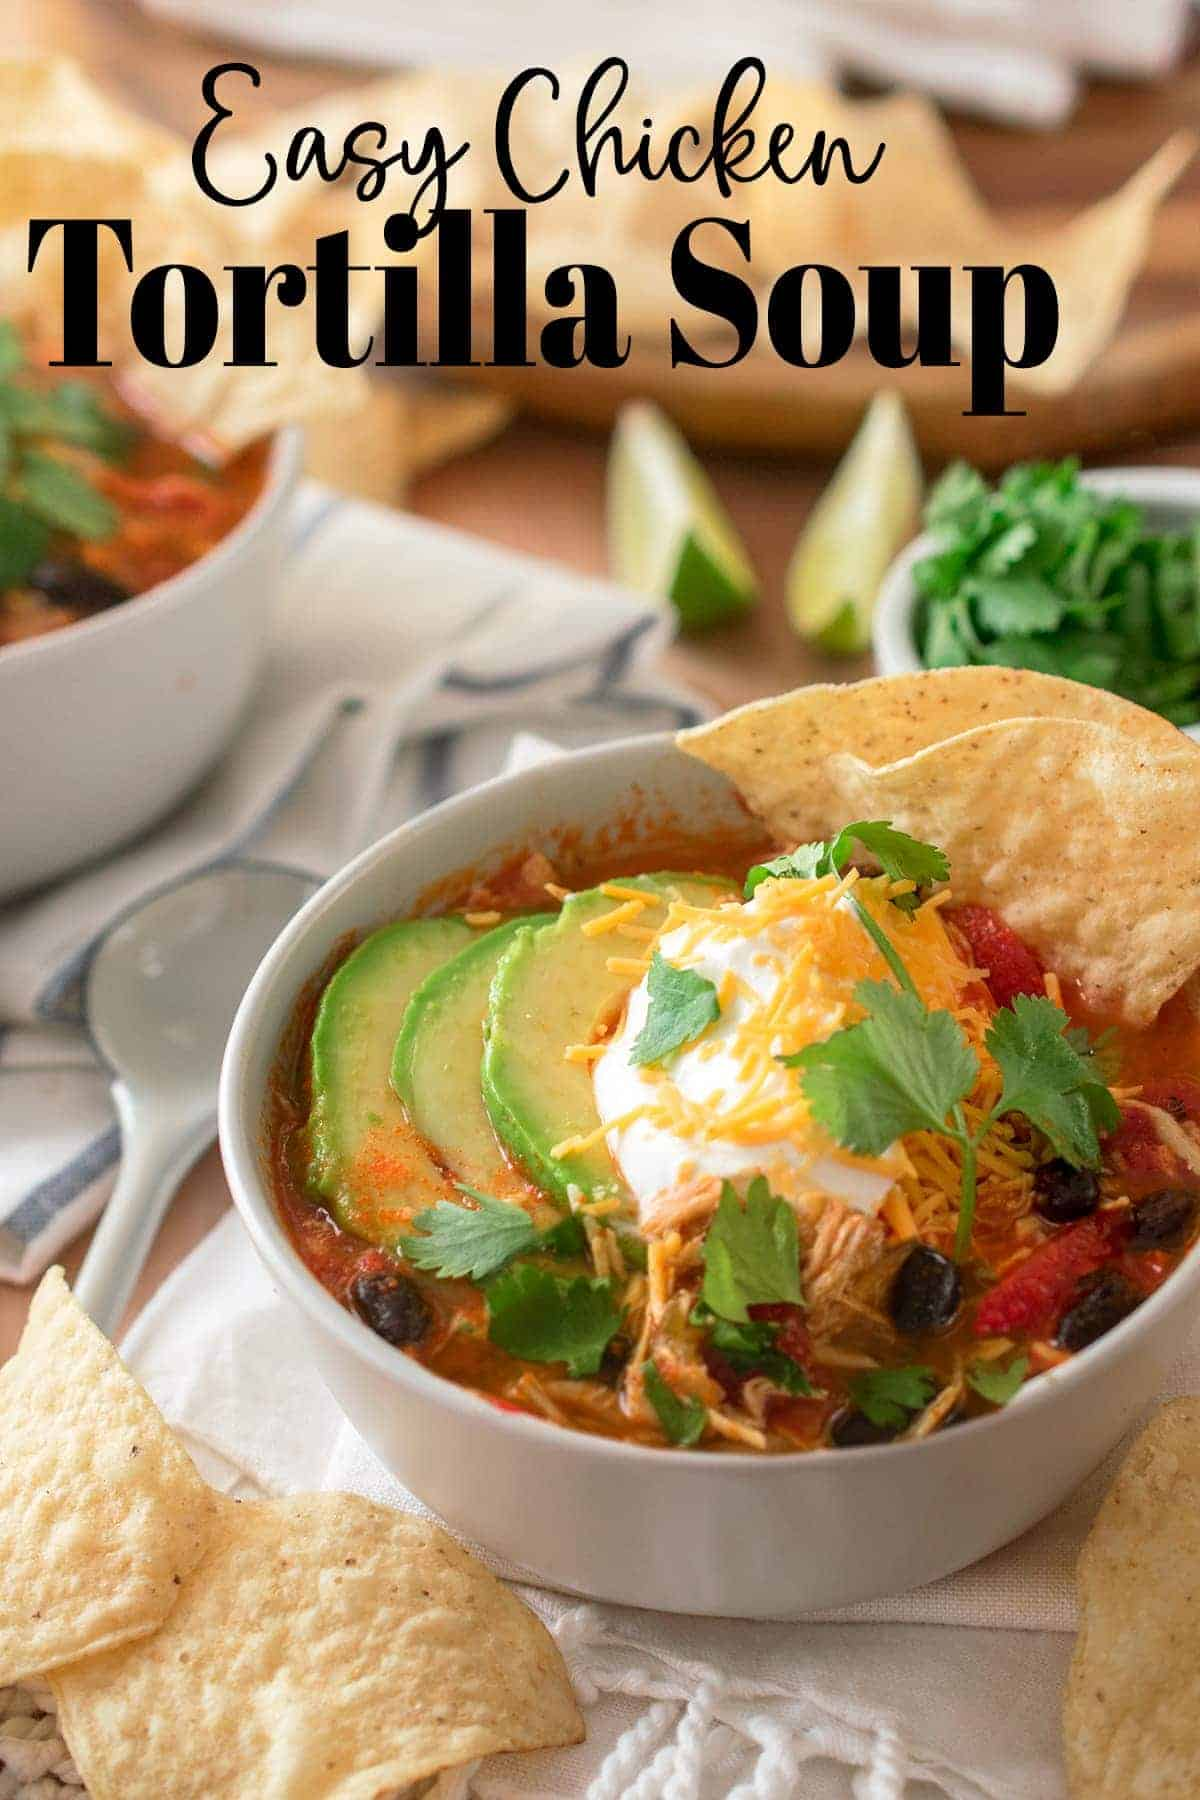 Easy Chicken Tortilla Soup topped with avocado, cilantro, cheese and sour cream with tortilla chips. Ingredients strewn around in the background and forefront.